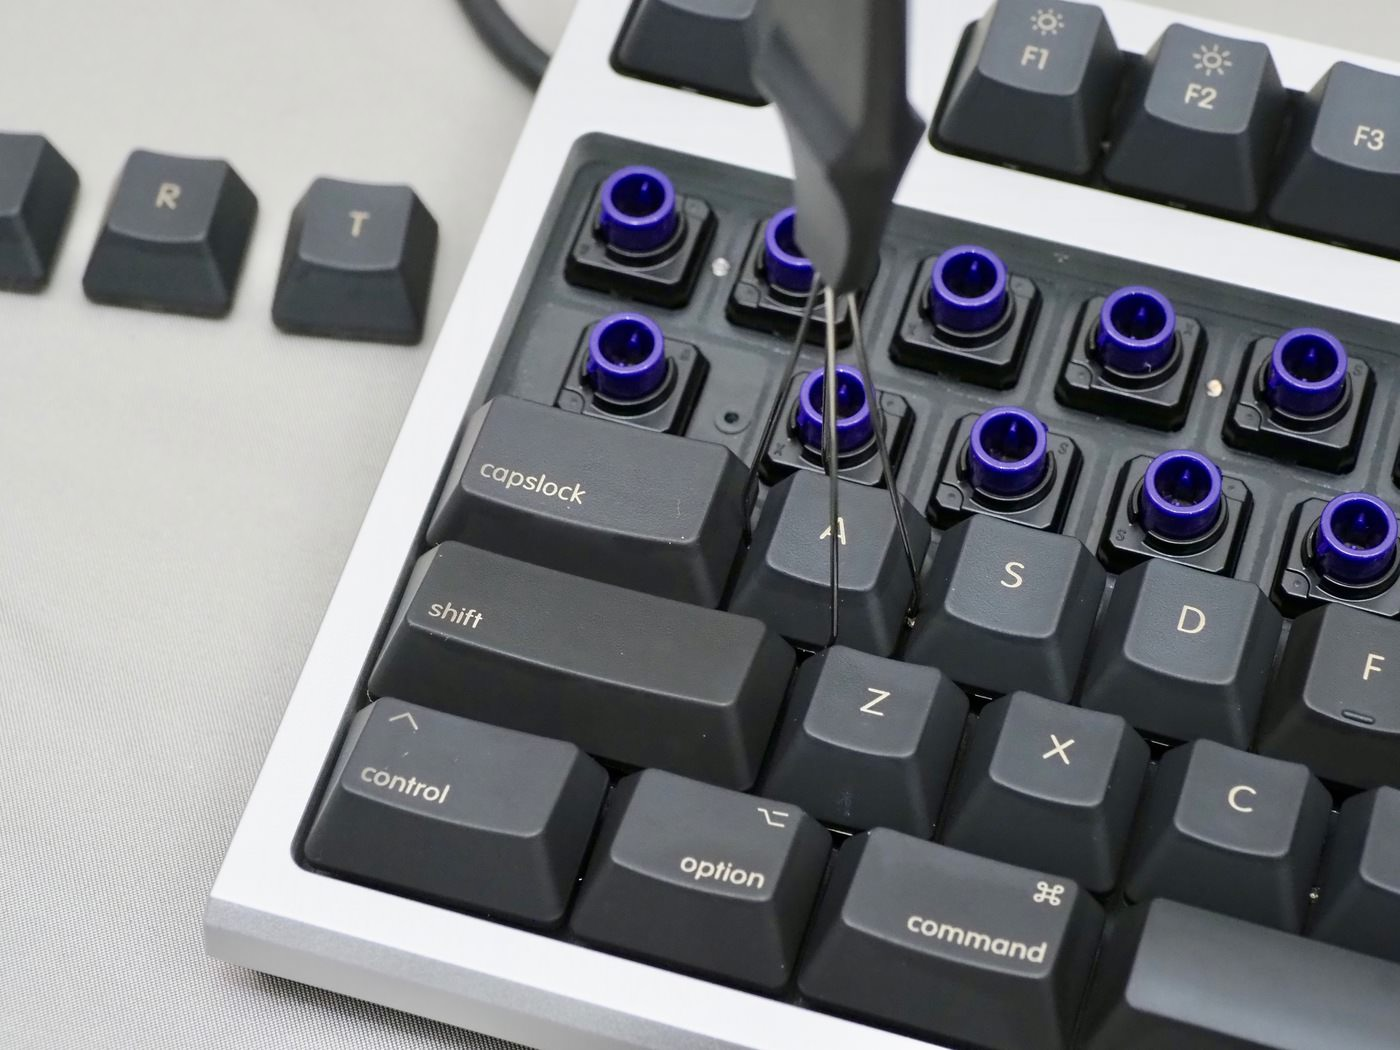 realforce-tkl-for-mac-pfu-limited-edition-review_00036-1